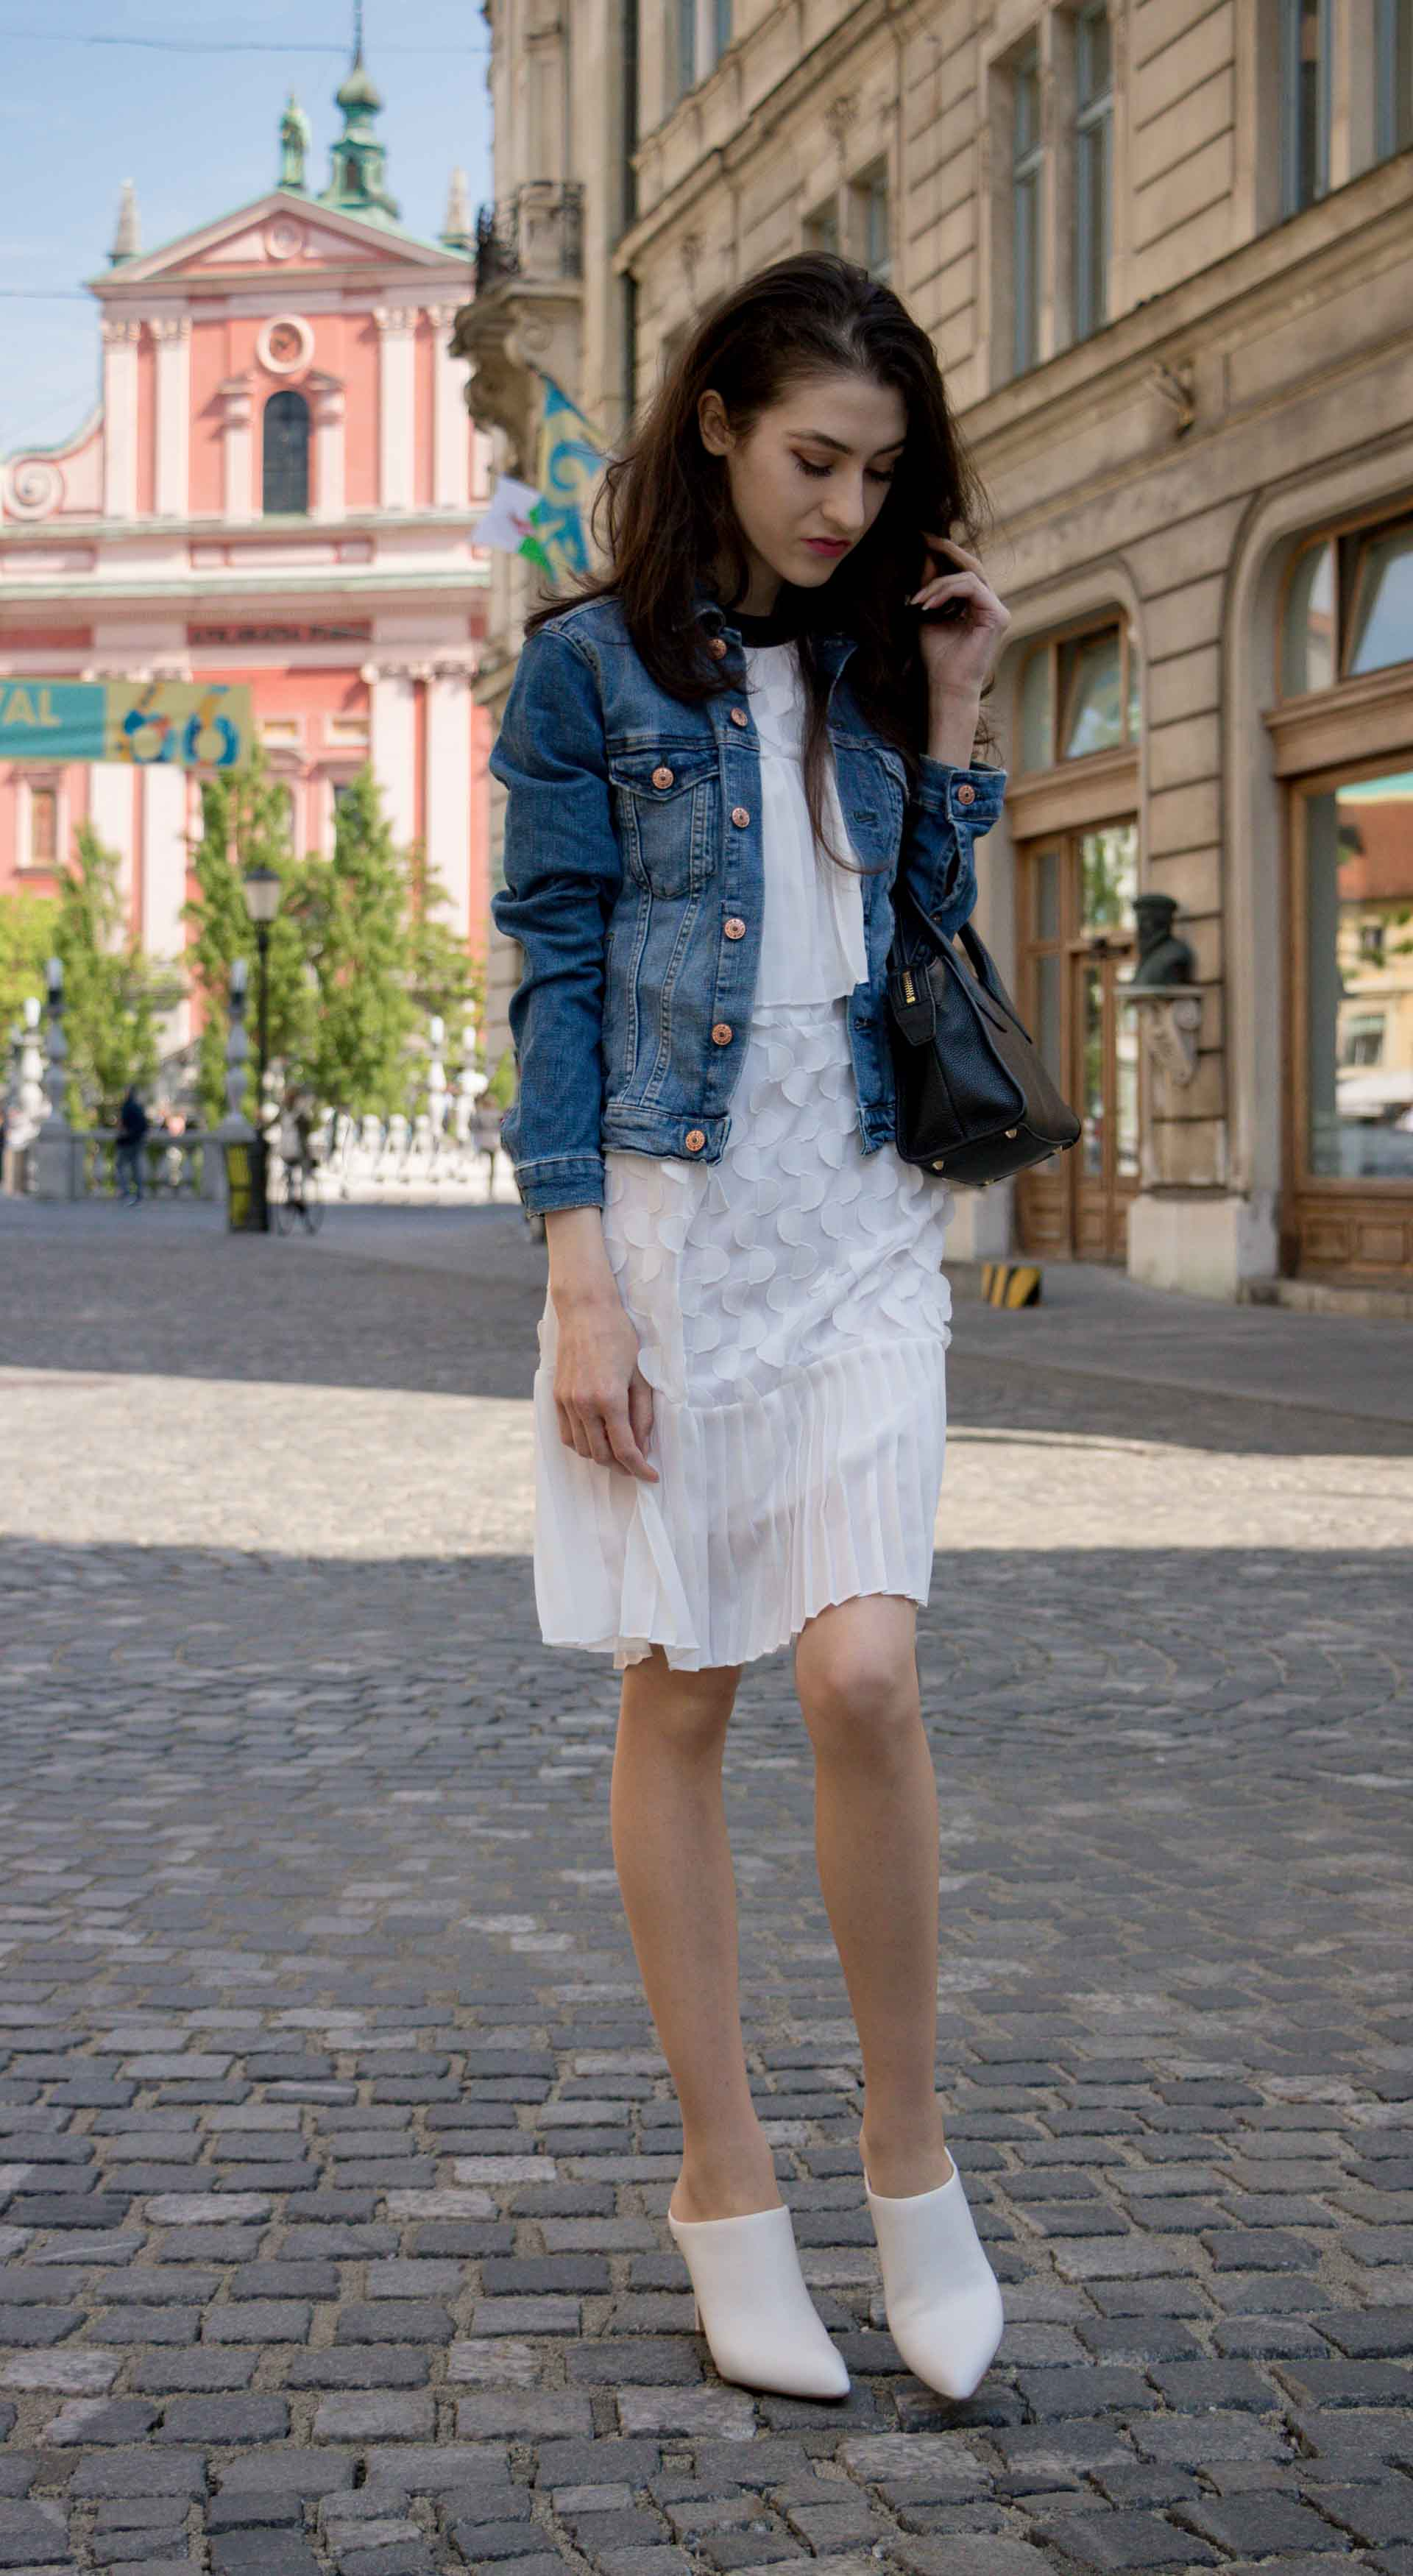 Veronika Lipar Fashion Editor of Brunette from Wall Street wearing H&M blue denim jacket, Storets white pleated short dress, white mules and Adam Selman x Le Specs white cat eye Lolita sunglasses, black small bag standing on the street in Ljubljana